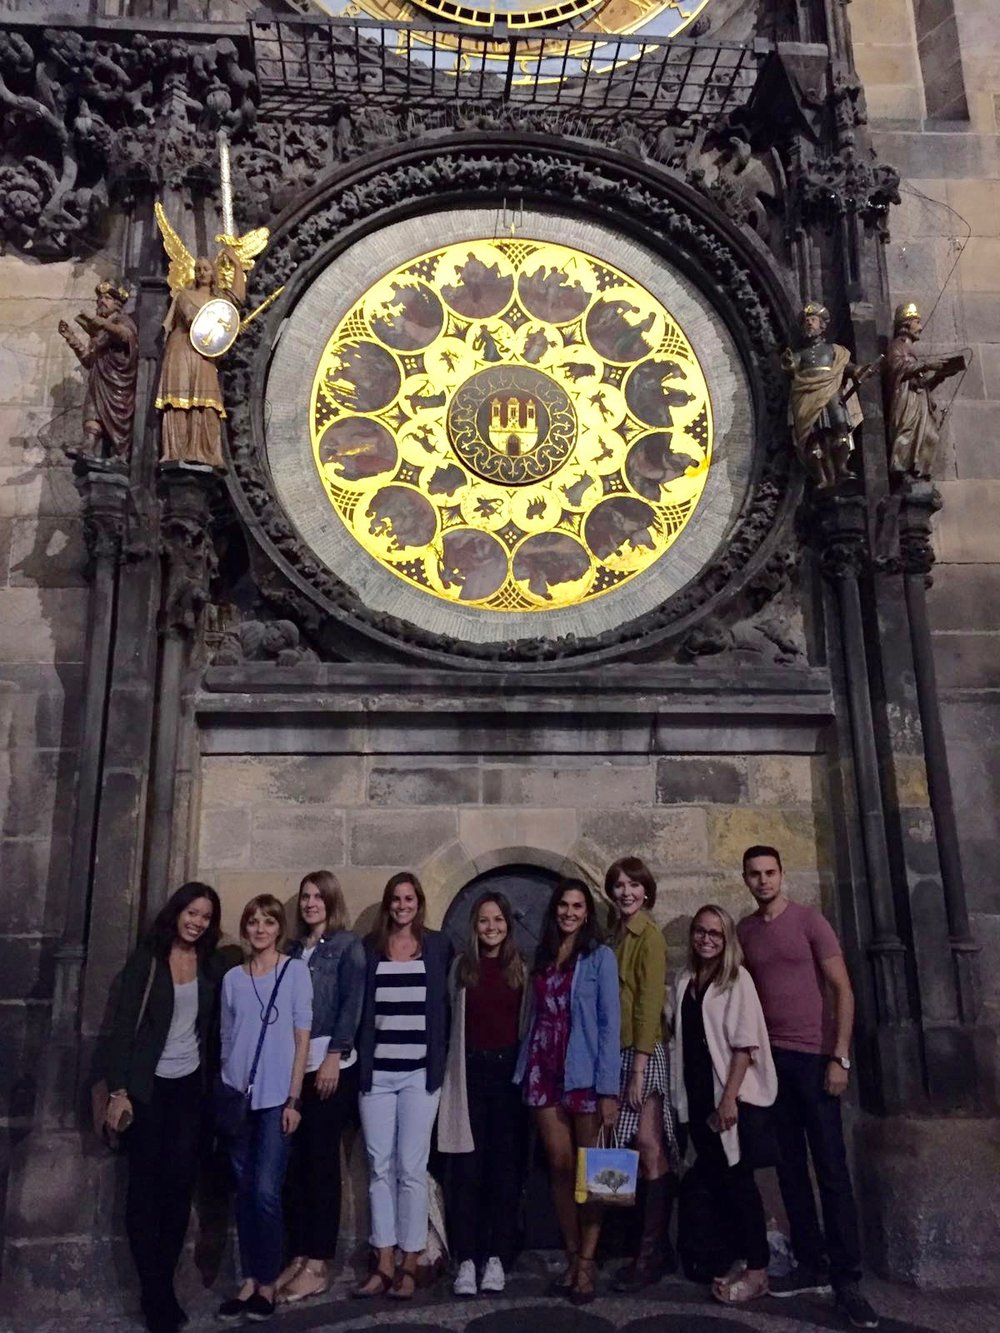 the-remote-experience-astronomical-clock-group.jpg